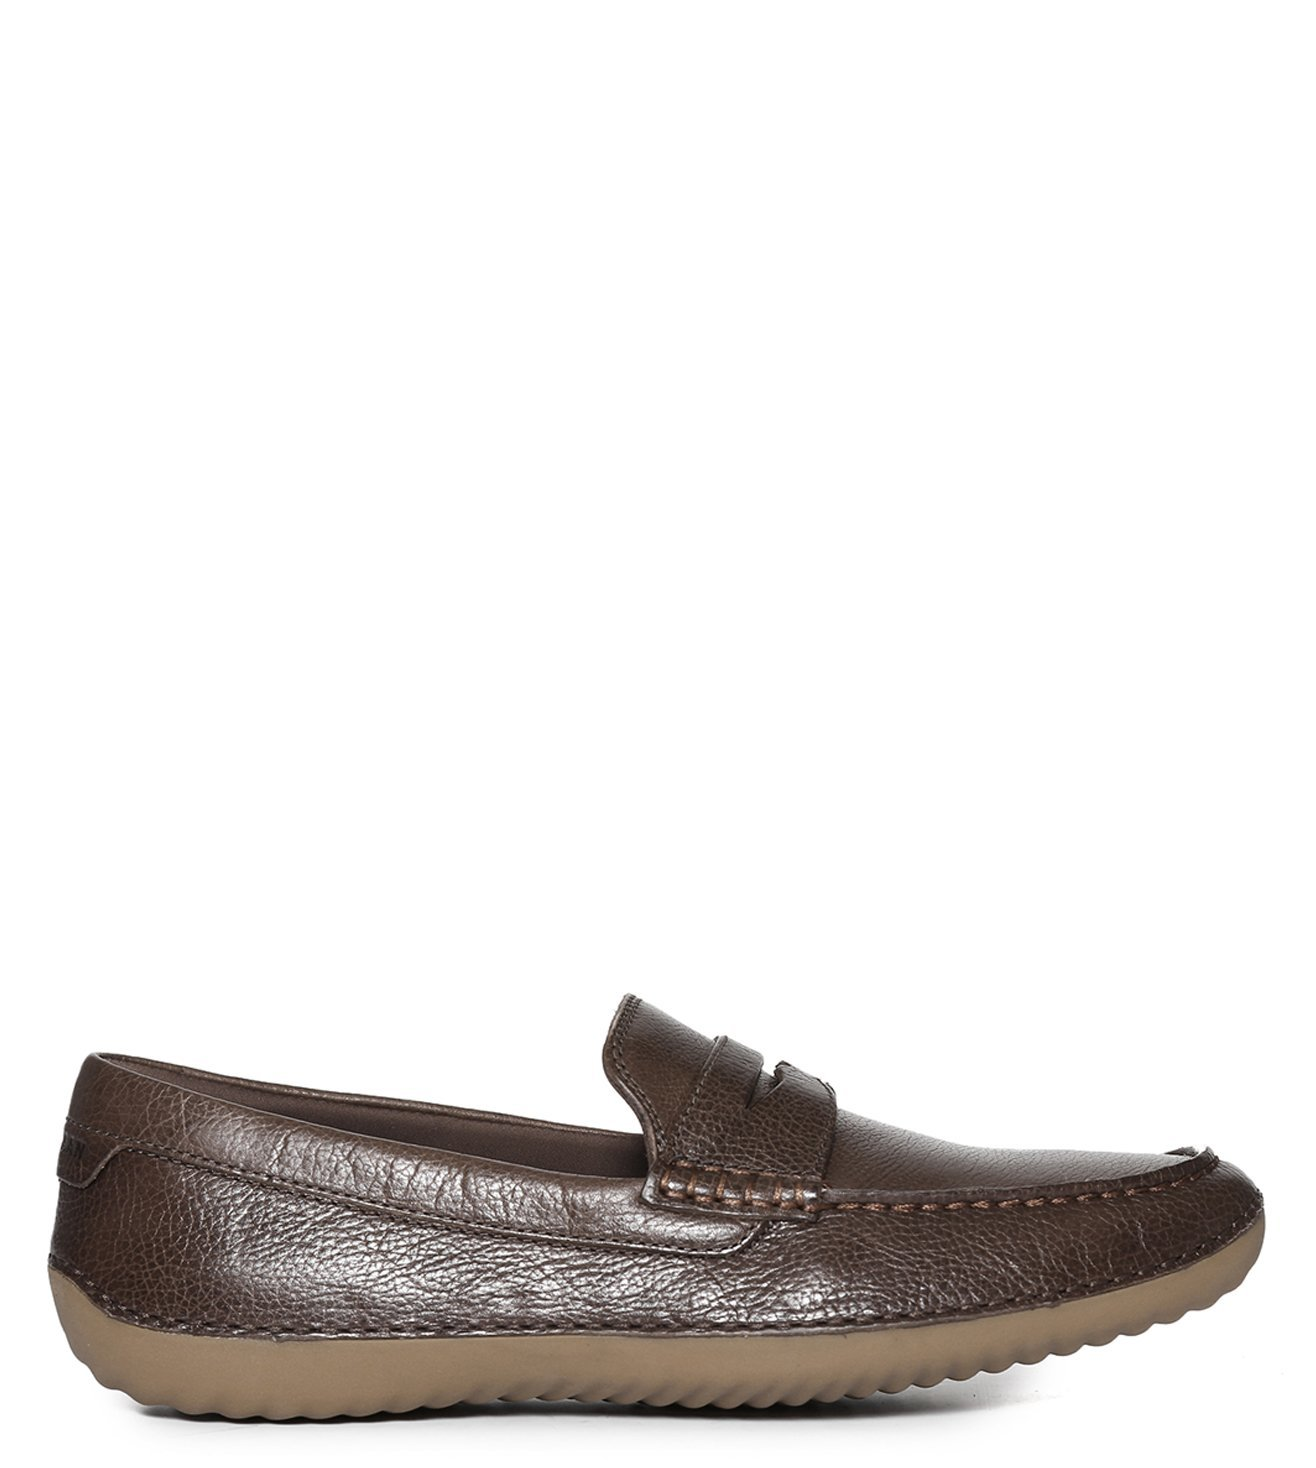 871a7f8c6ee Buy Cole Haan Brown Motogrand Penny Driver Loafers for Men Online   Tata  CLiQ Luxury